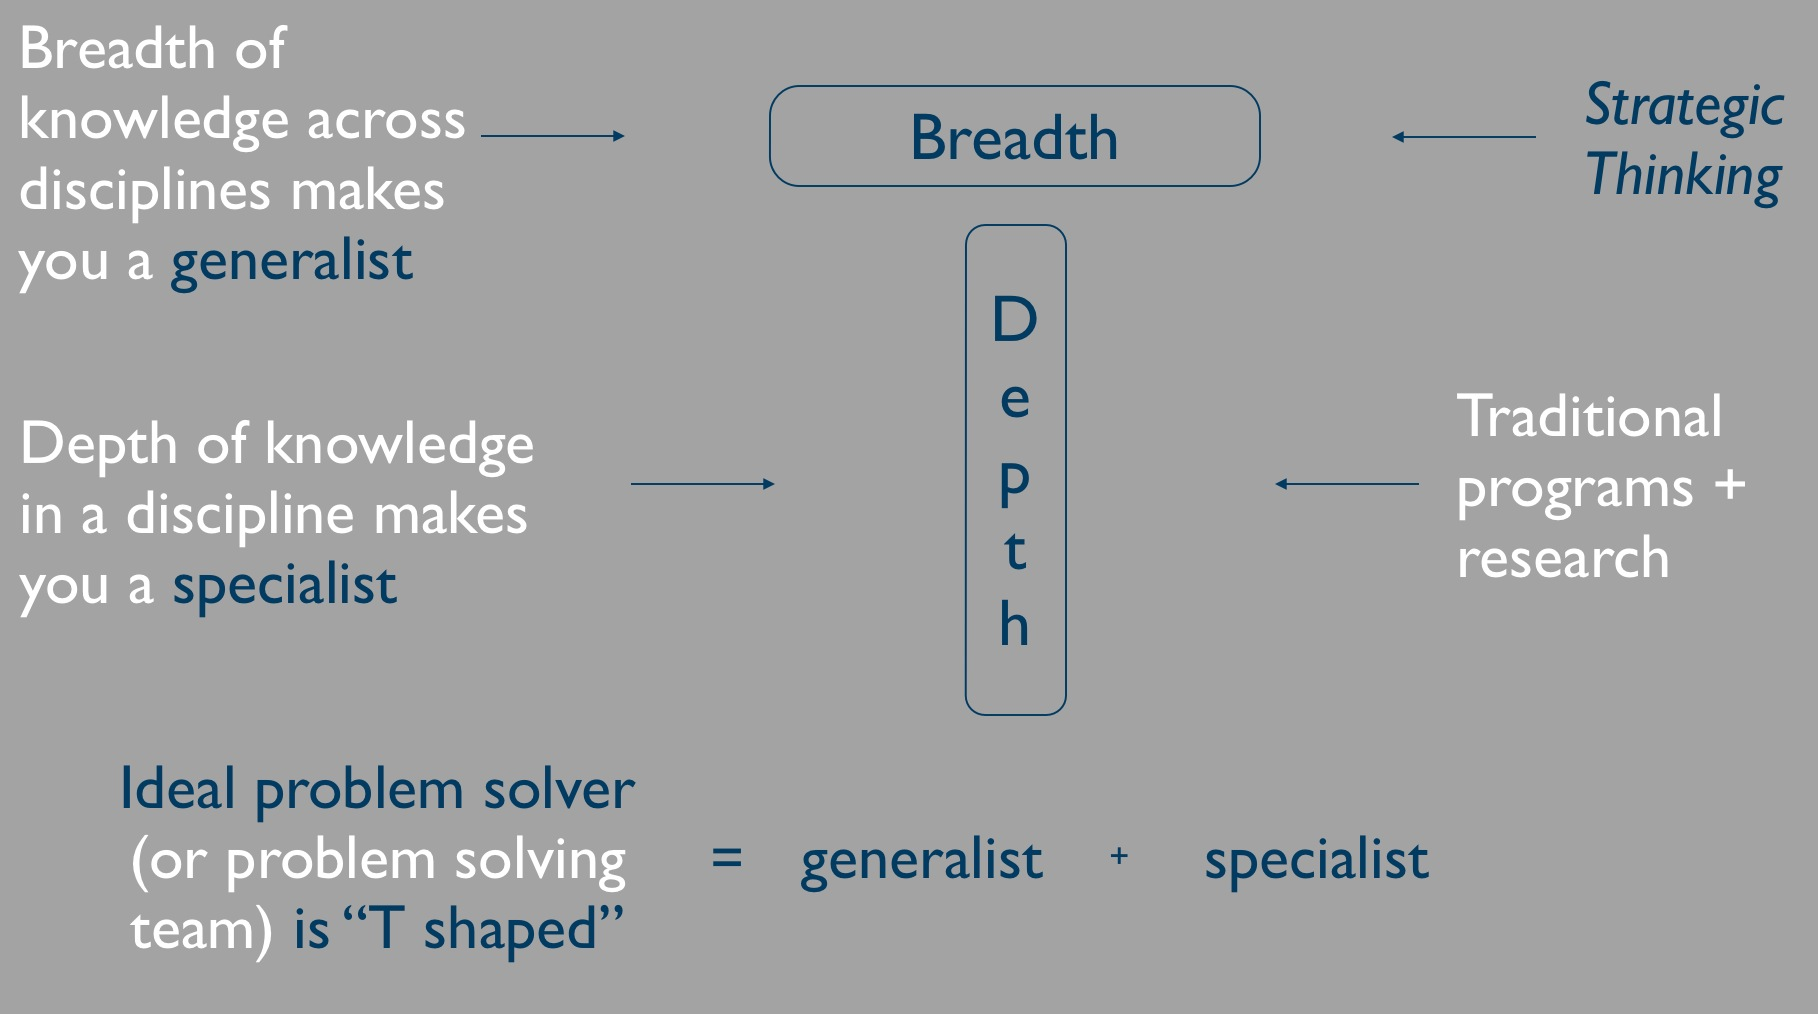 Effective problem solvers are T-shaped, having both depth and breadth of knowledge